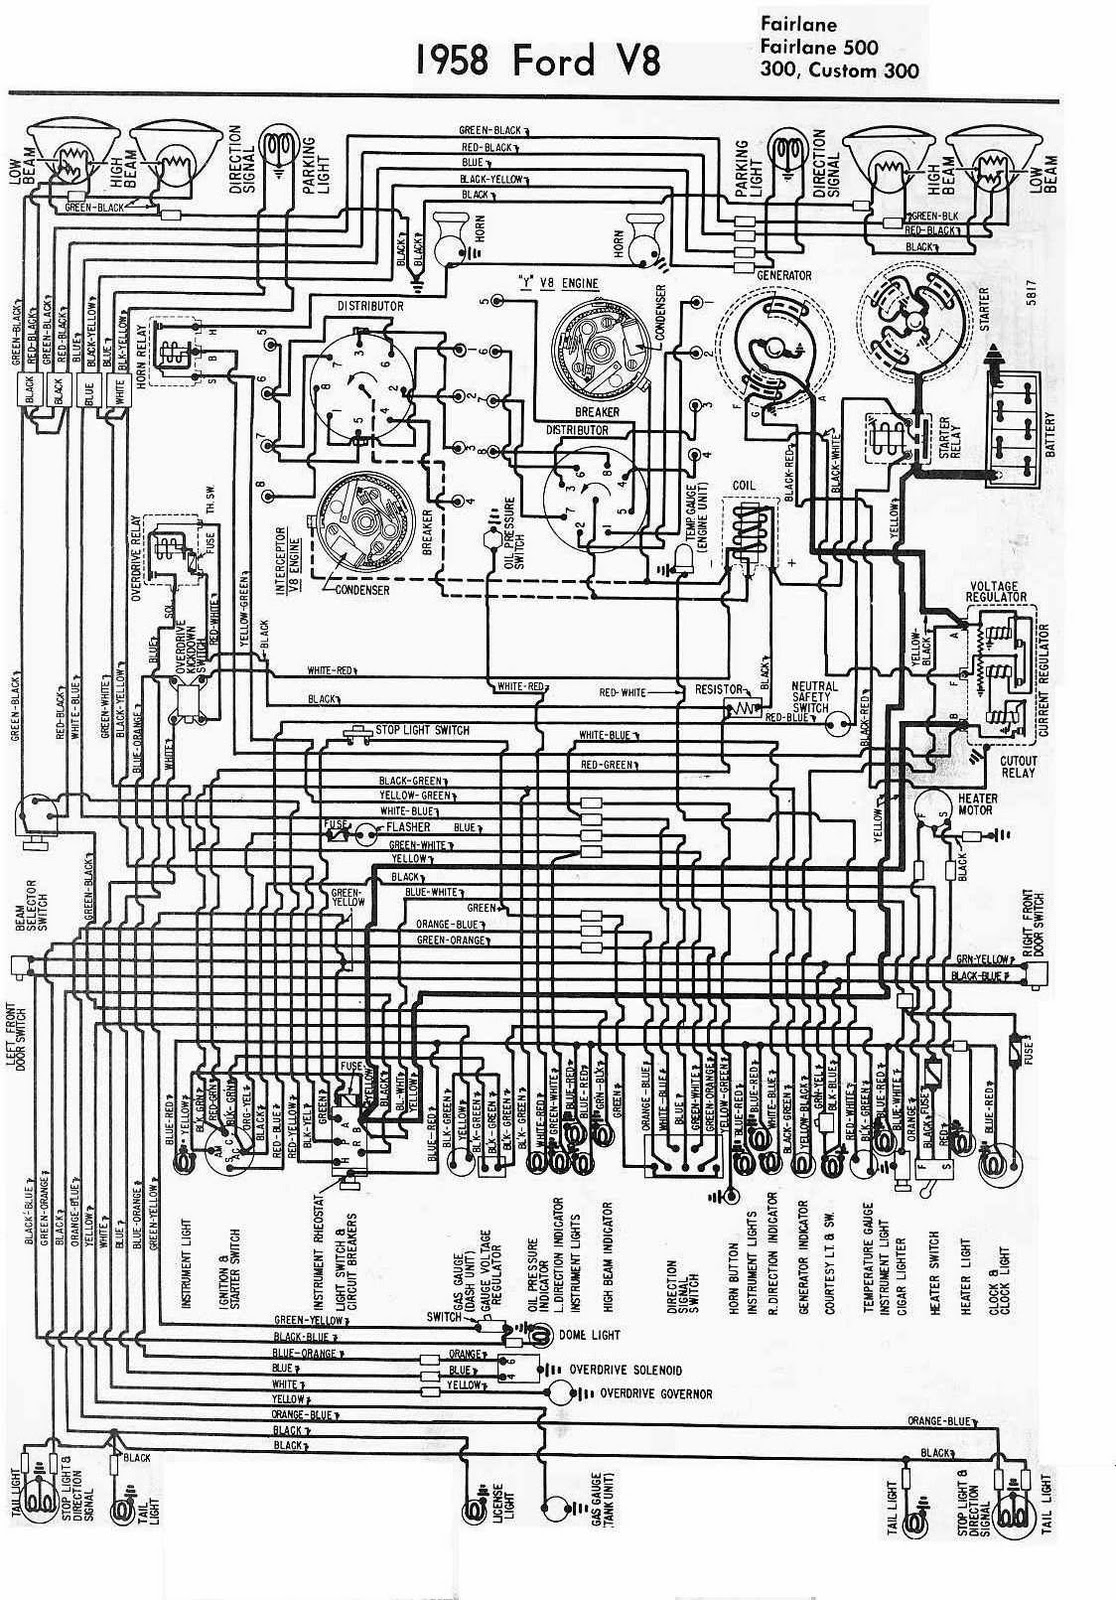 v8 interceptor engine diagram